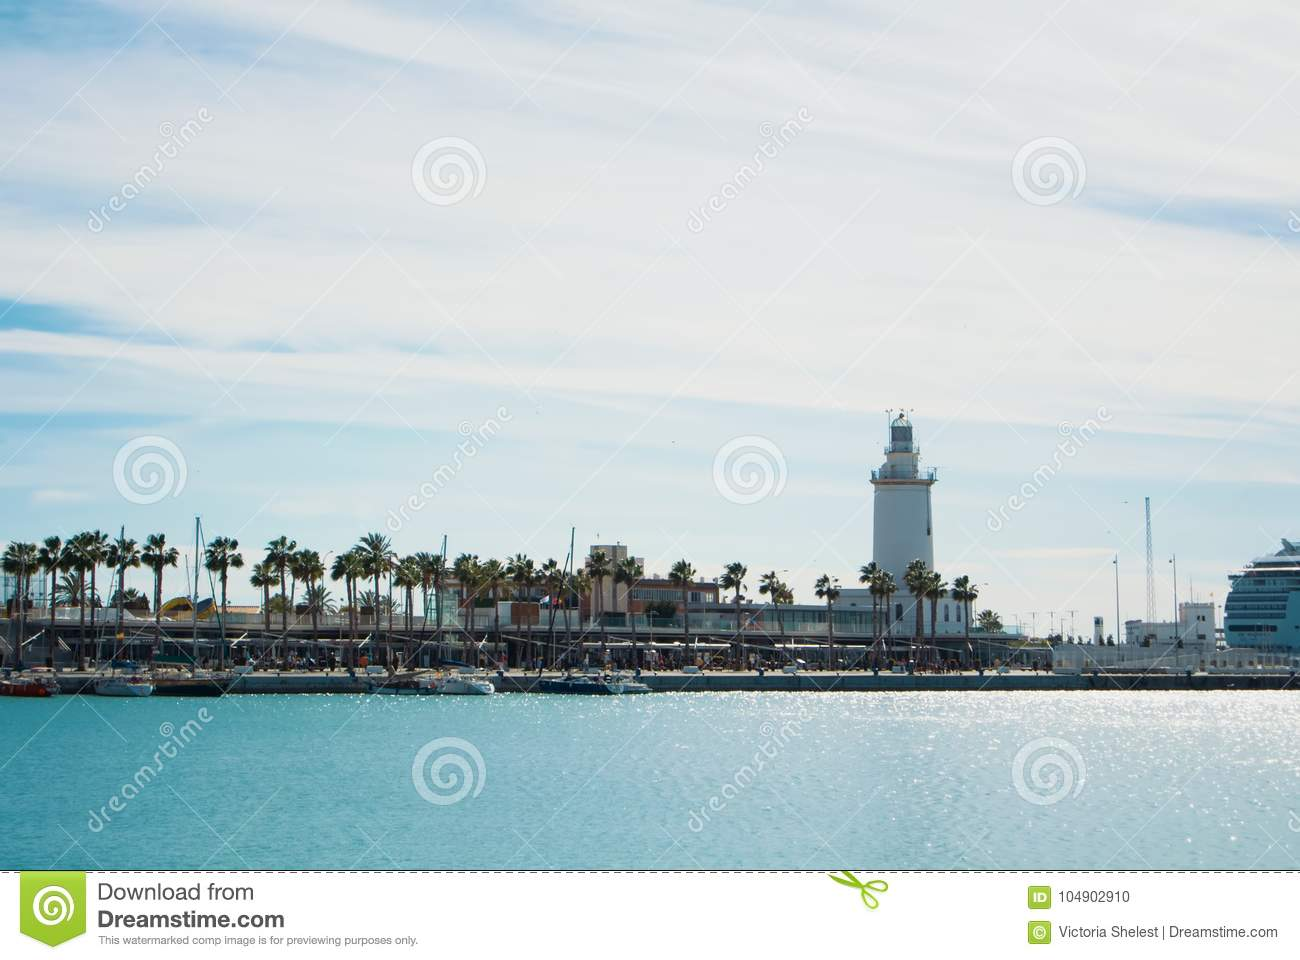 MALAGA, SPAIN - FEBRUARY 7, 2017: A landscape with La Farola lig